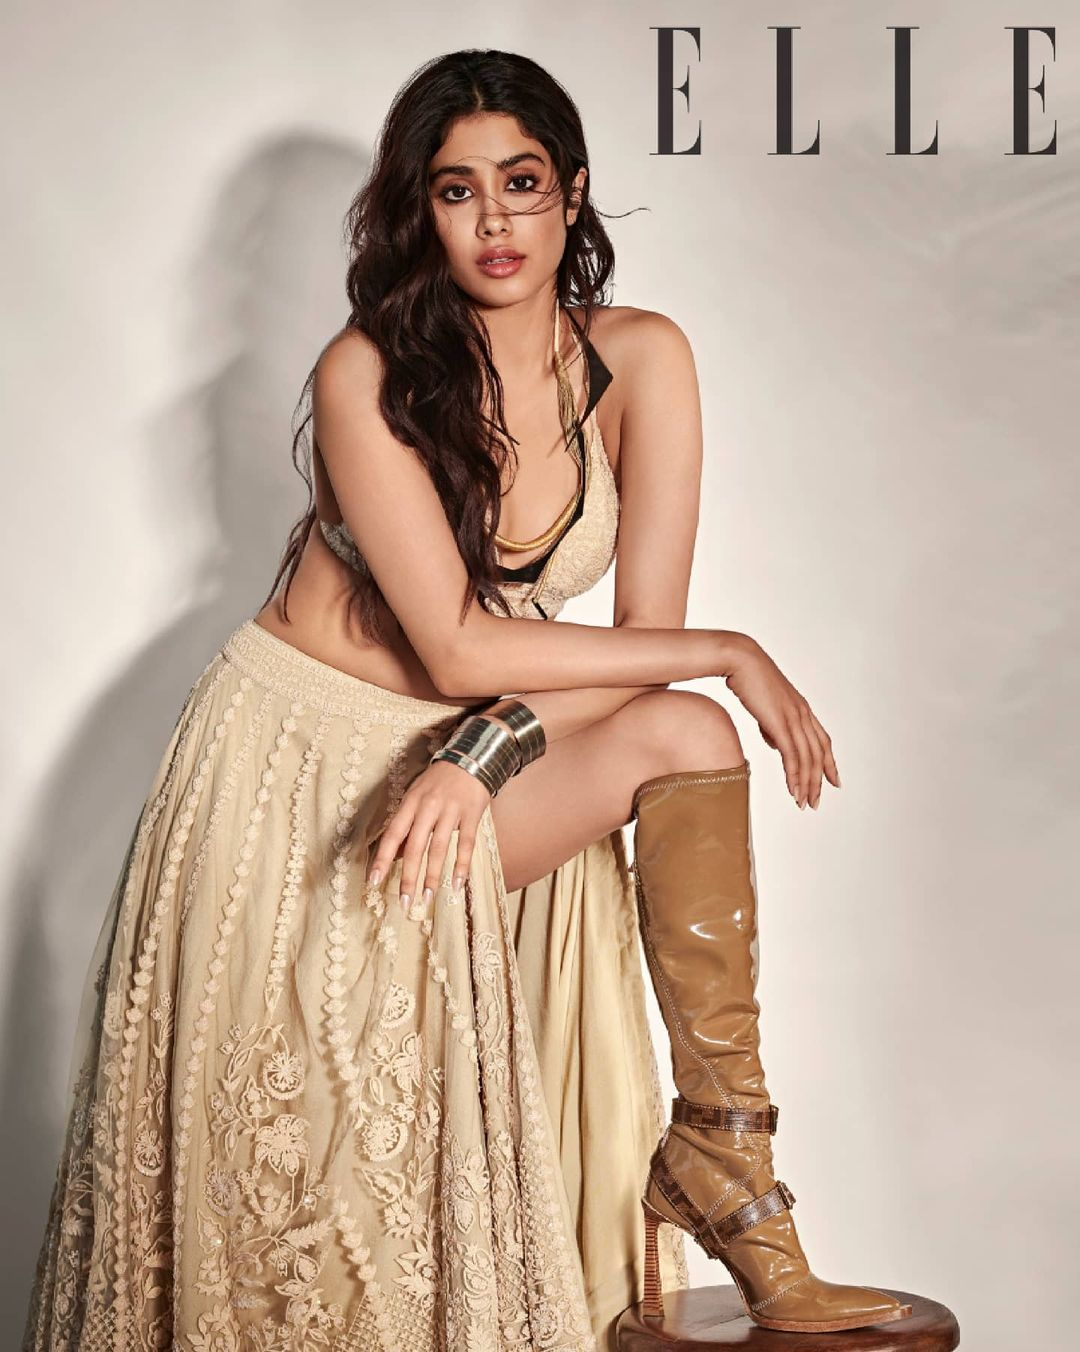 Janhvi Kapoor oozes oomph in her sexy pose. (Image: Instagram)